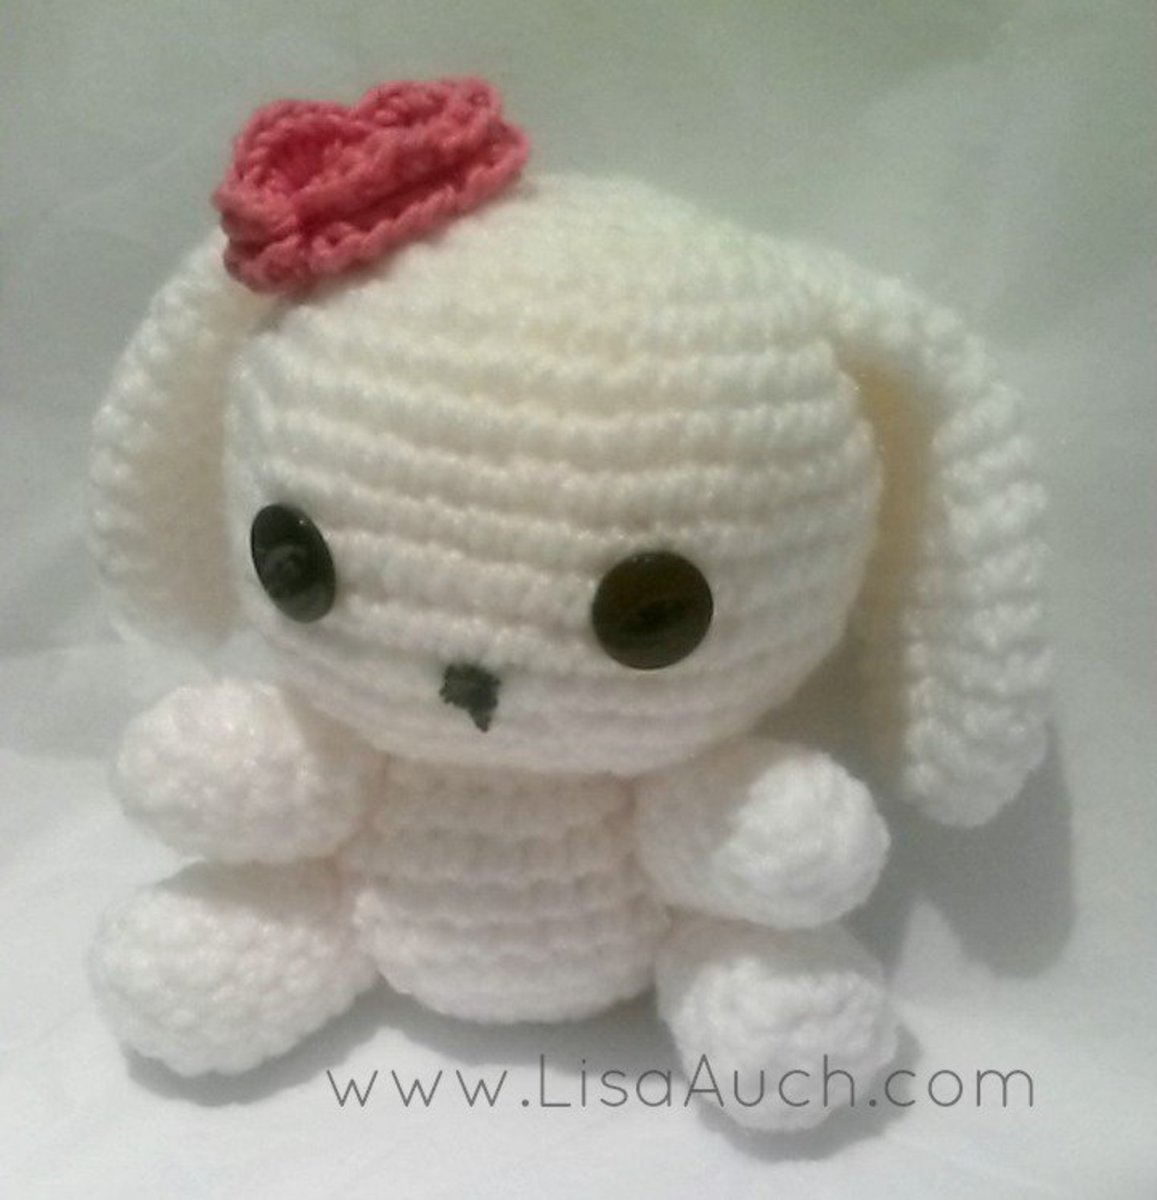 All Pattern's can be found @ http://www.crochet-patterns-free.com/